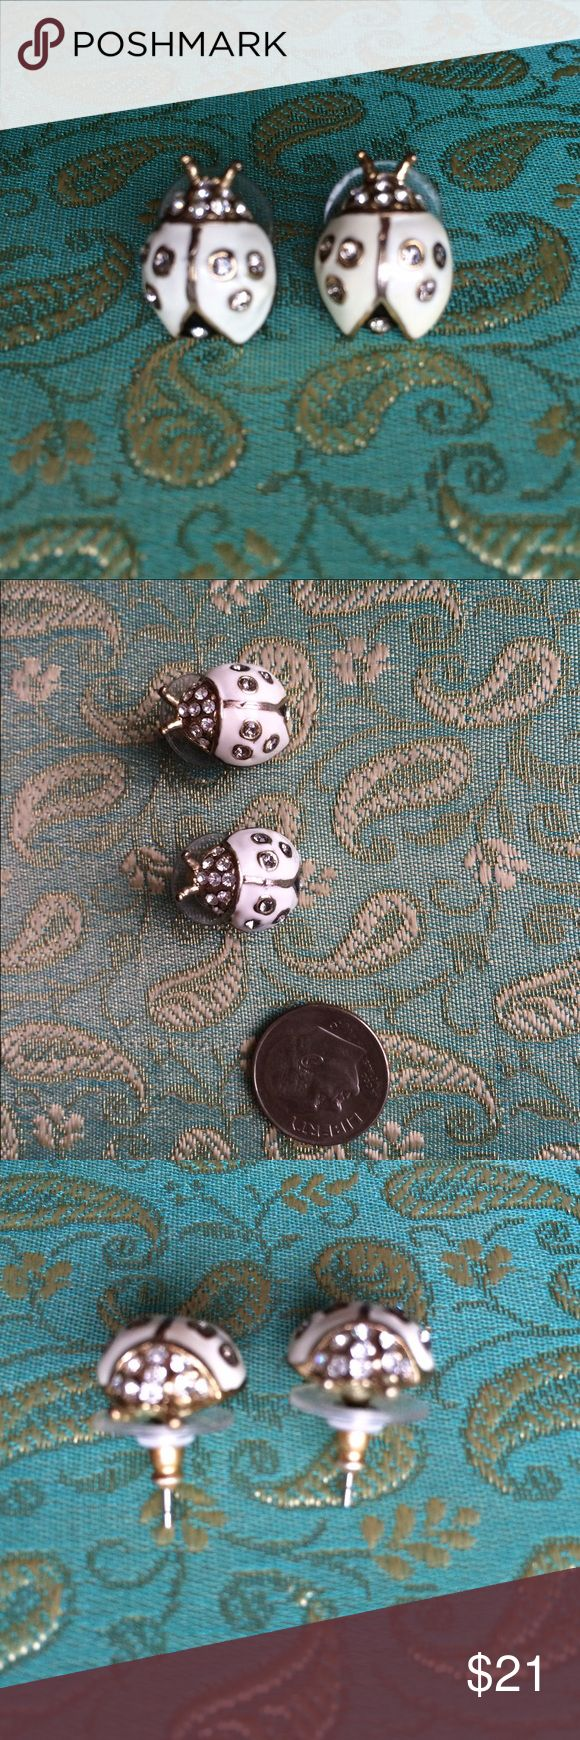 🐞Check Em Out!🐞 Talbots White Ladybug Earrings! Love these Talbots White & Gold Ladybugs! Eye cathchingly cute! A great deal for some great pieces ❤️🐞😊👍🏼👀😻 Talbots Jewelry Earrings